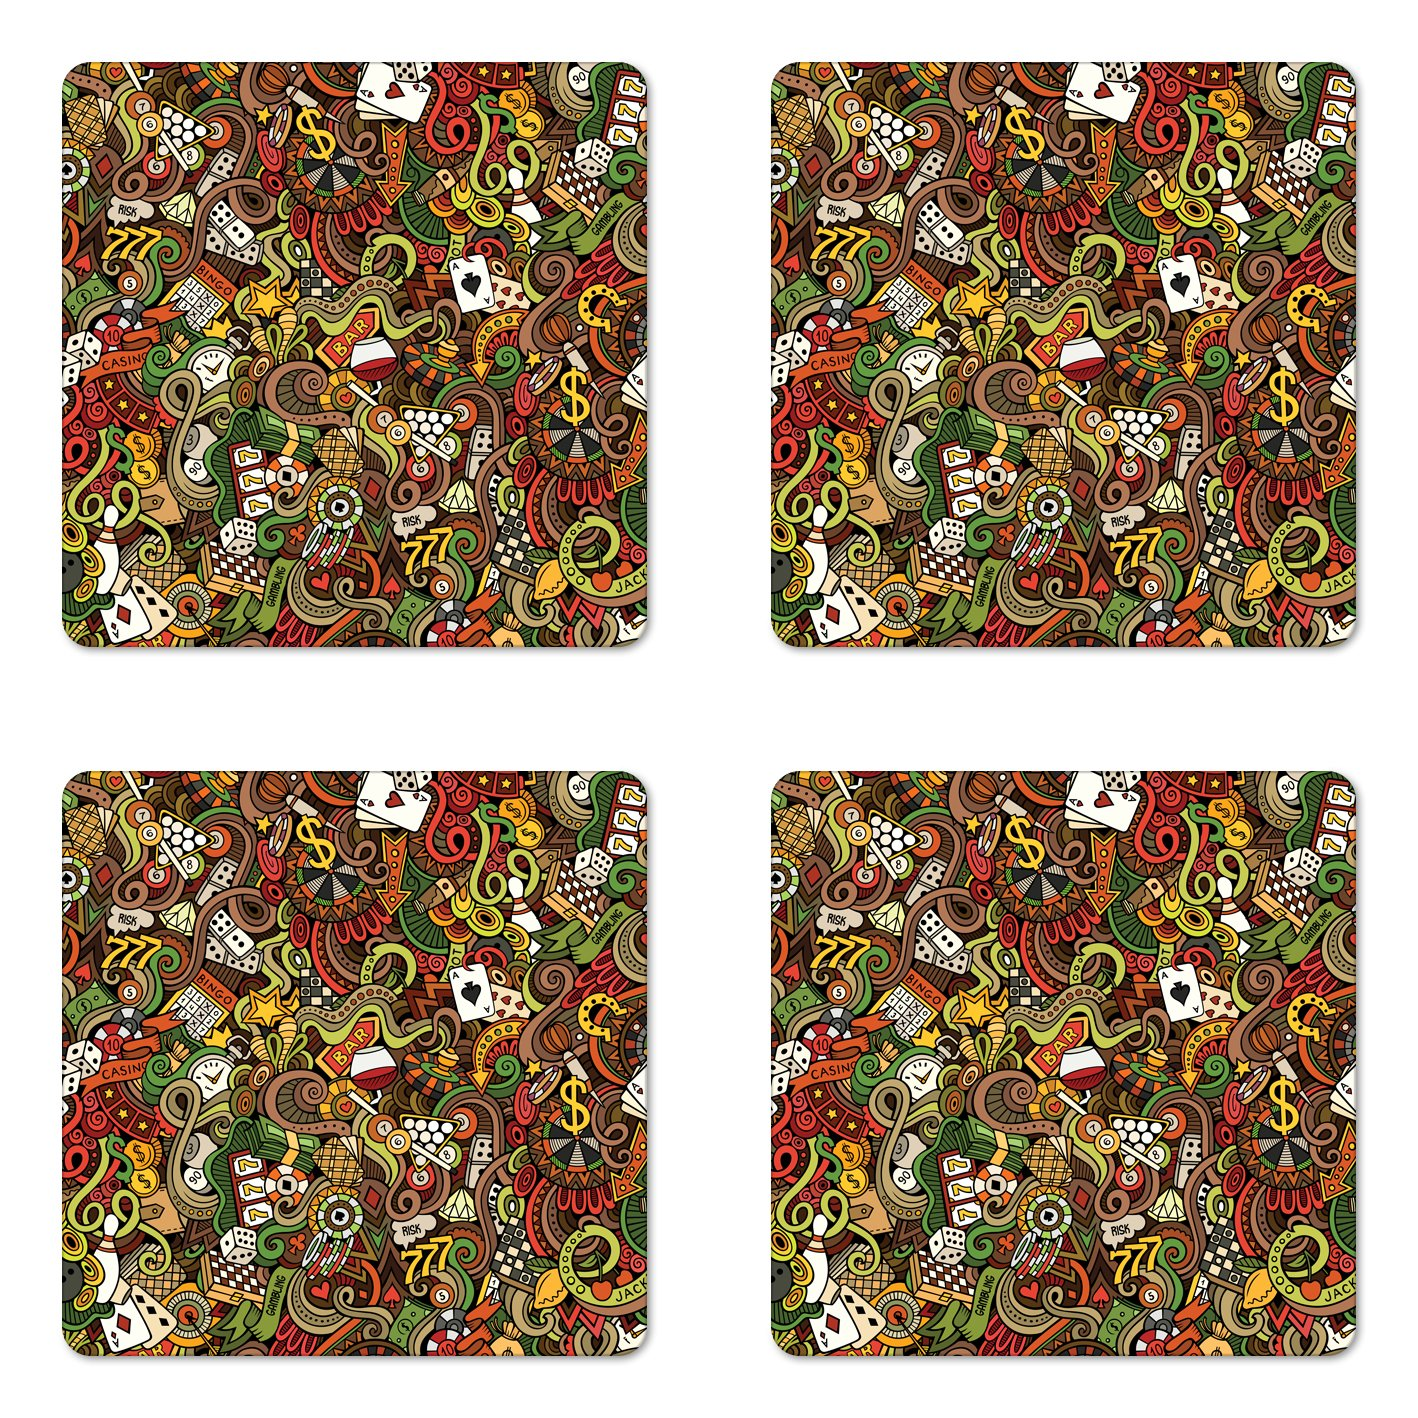 Ambesonne Casino Coaster Set of Four, Doodles Style Artwork of Bingo and Cards Excitement Checkers King Tambourine Vegas, Square Hardboard Gloss Coasters for Drinks, Multicolor by Ambesonne